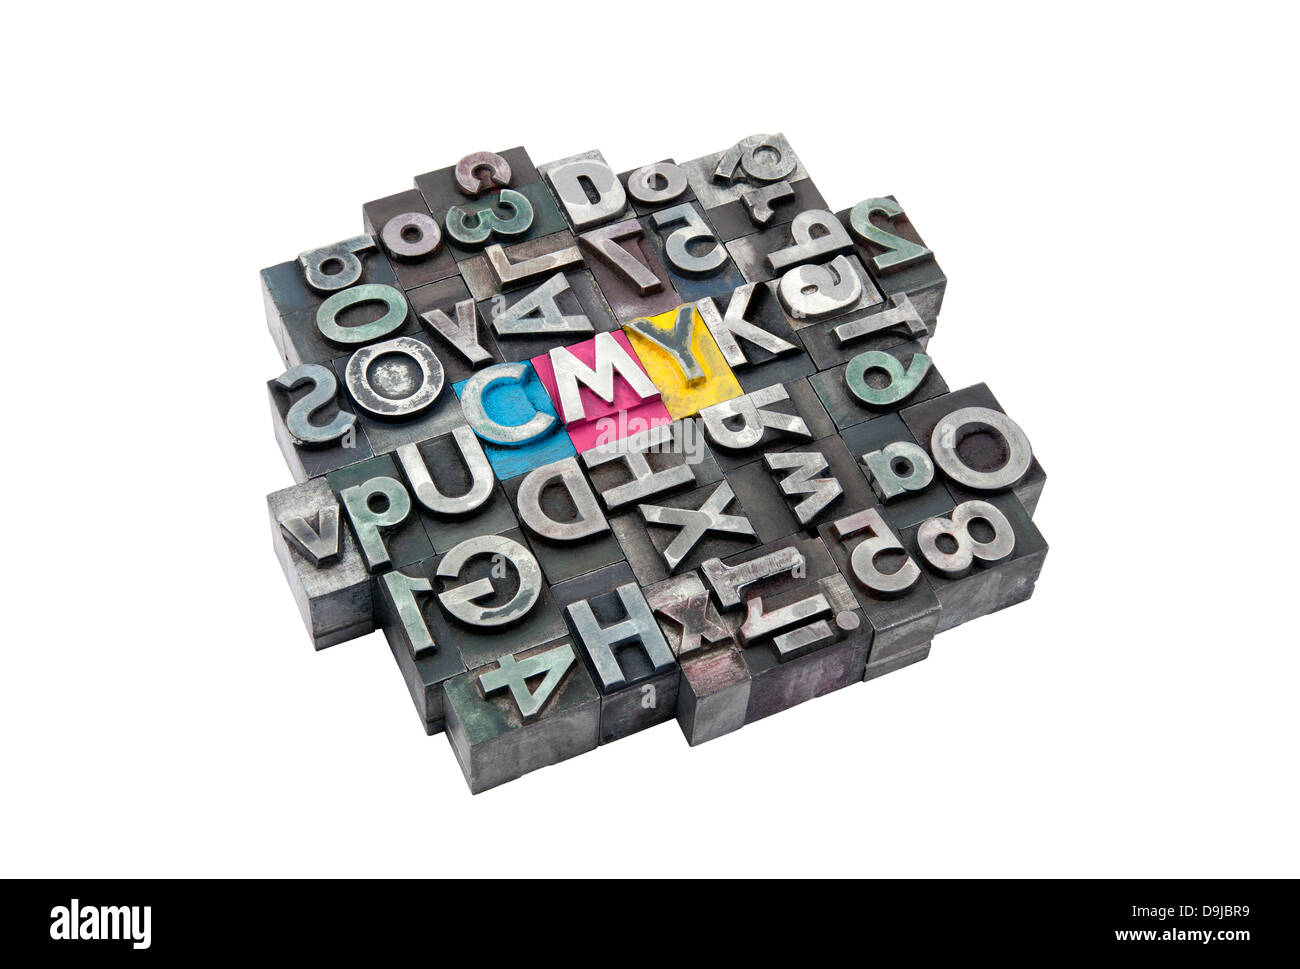 Cmyk made from metal letters - Stock Image